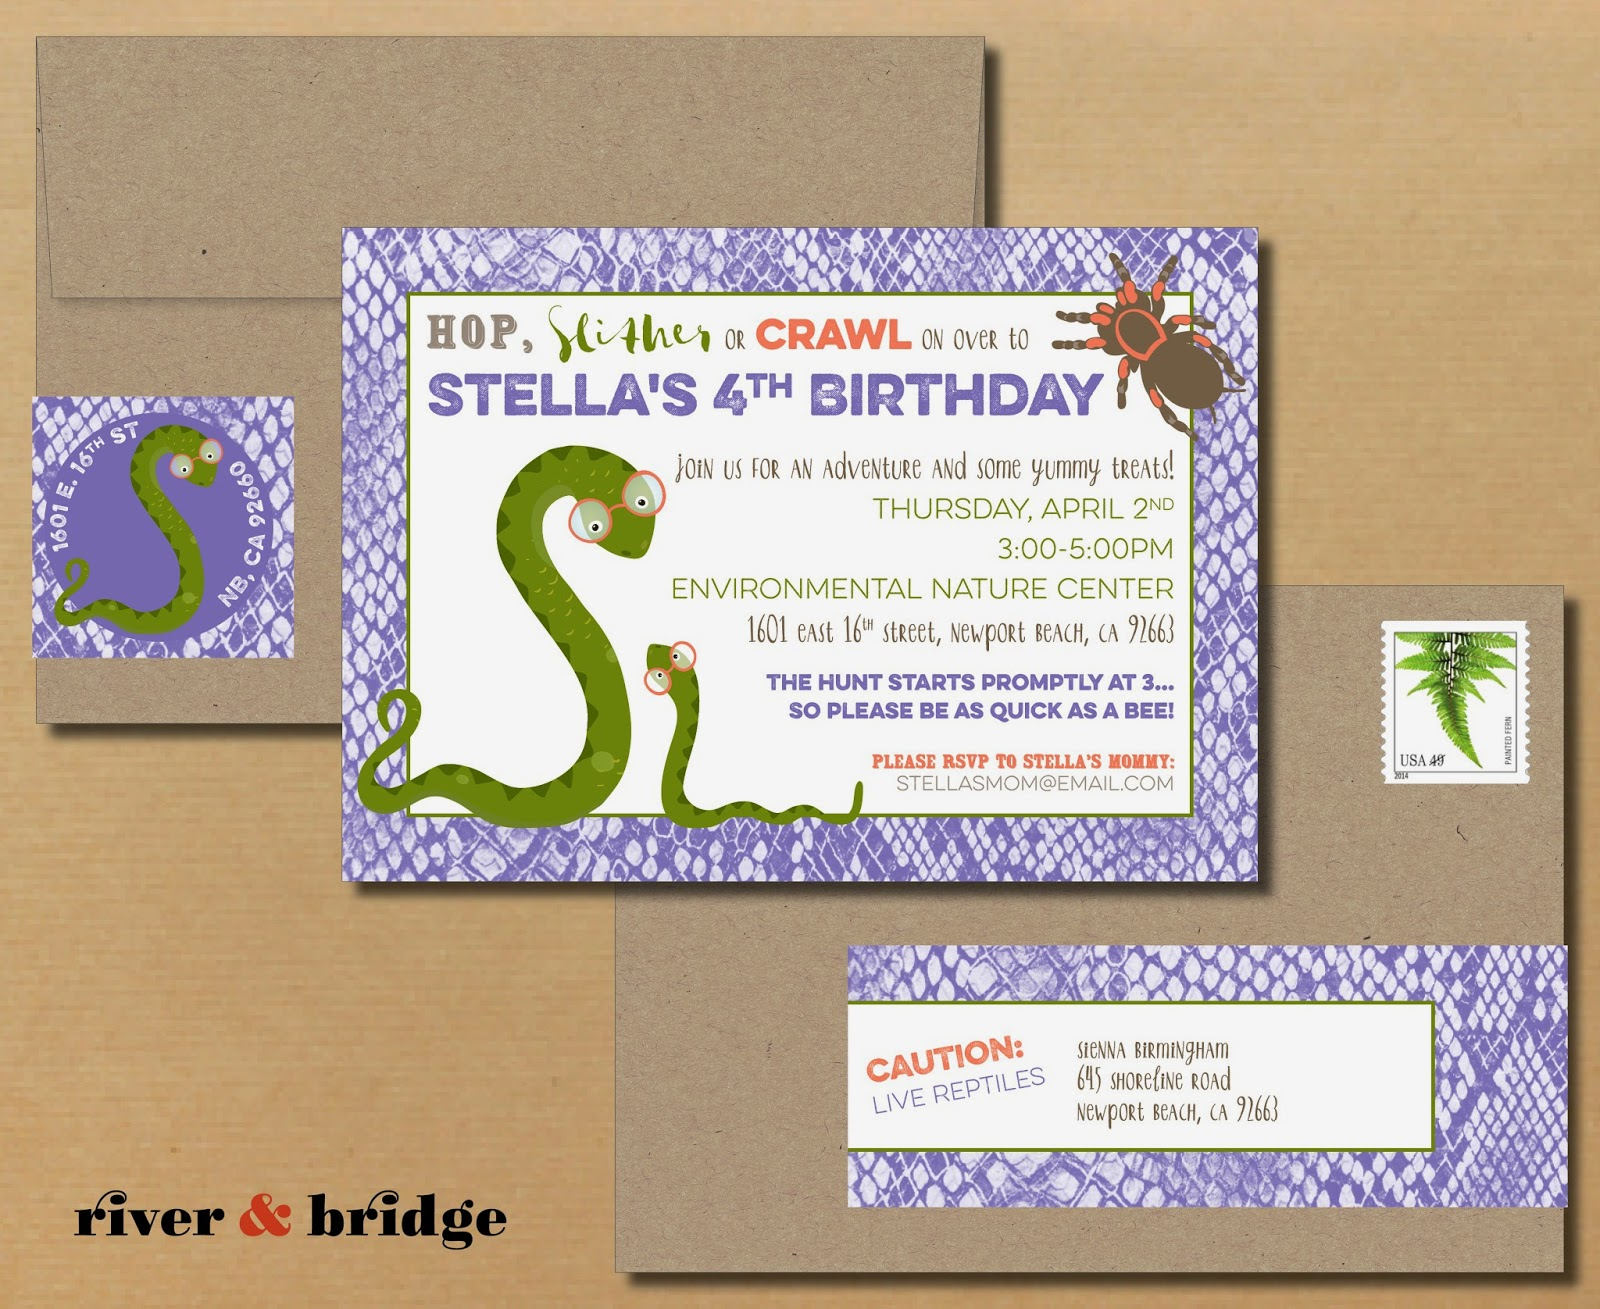 River bridge leapin lizards stellas 4th birthday stella loves animals especially reptiles so her mom planned her a fun party at the environmental nature center most of the reptile invitations out there stopboris Gallery